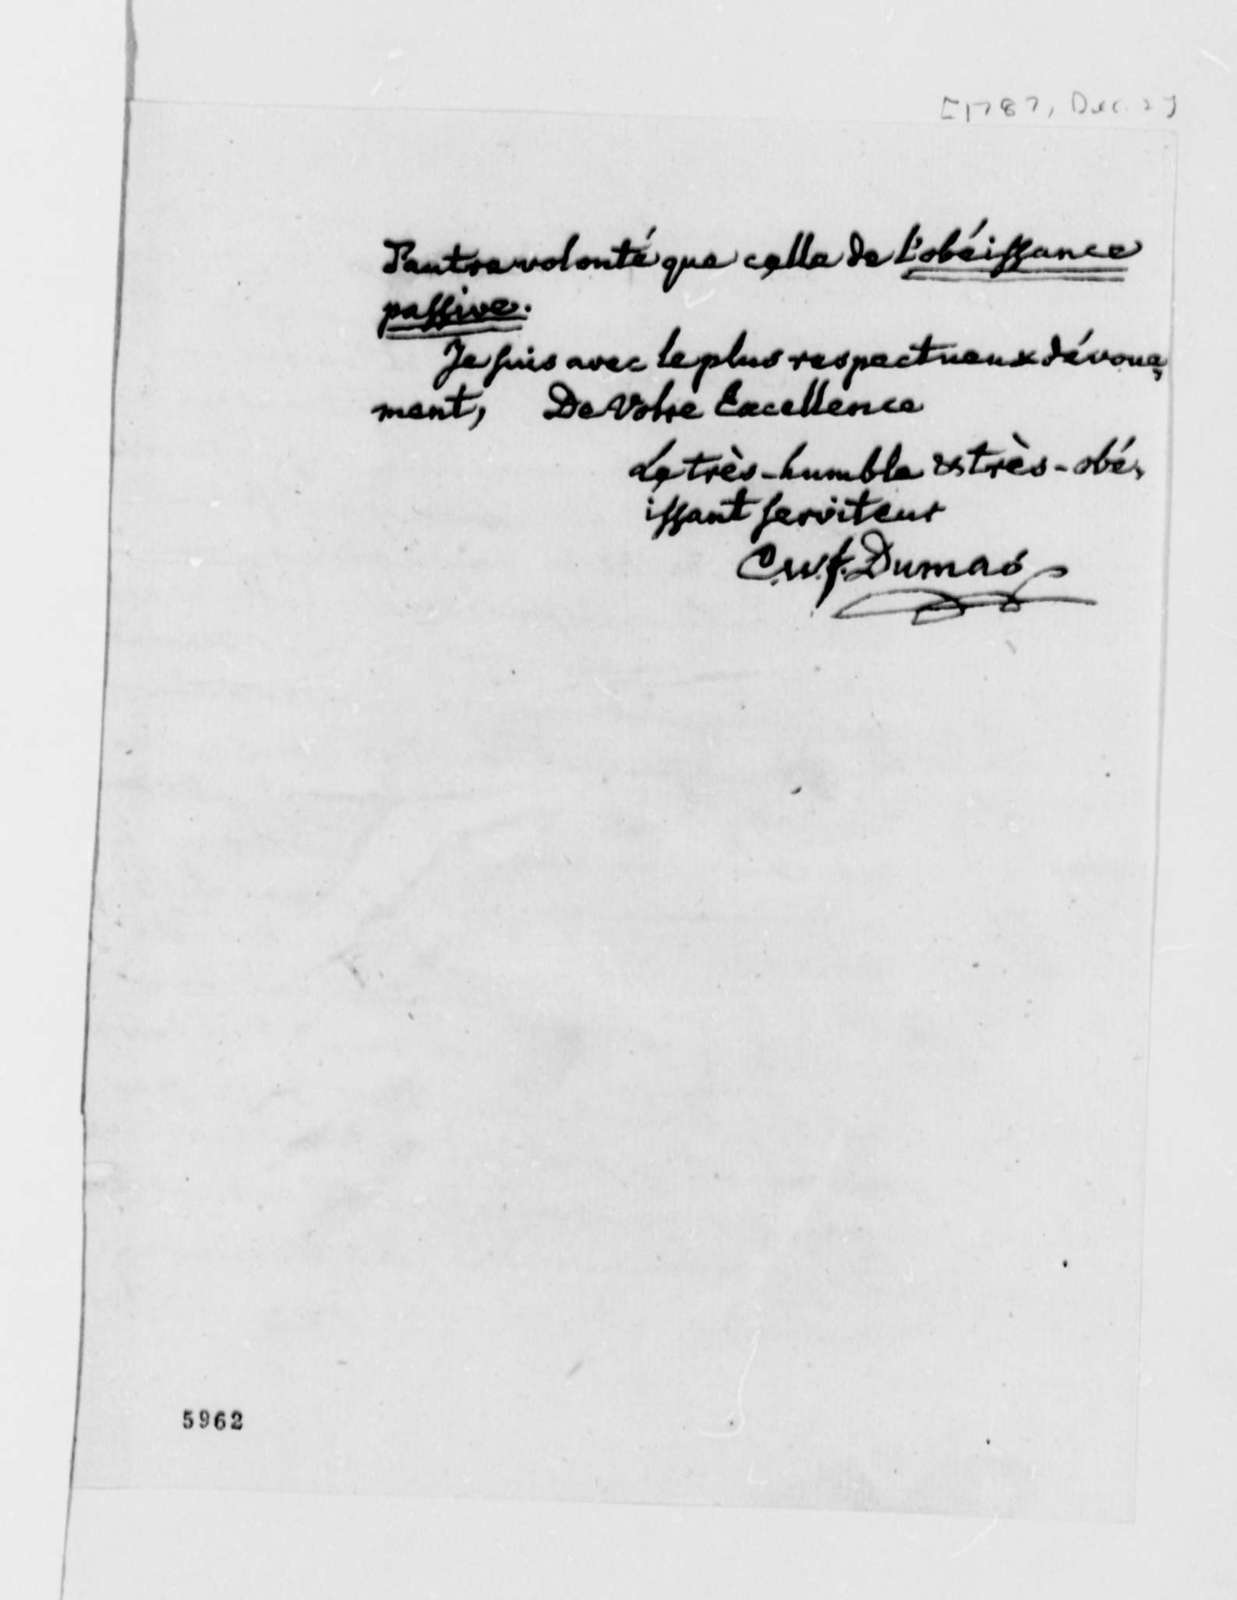 Charles William Frederic Dumas to Thomas Jefferson, December 2, 1787, in French